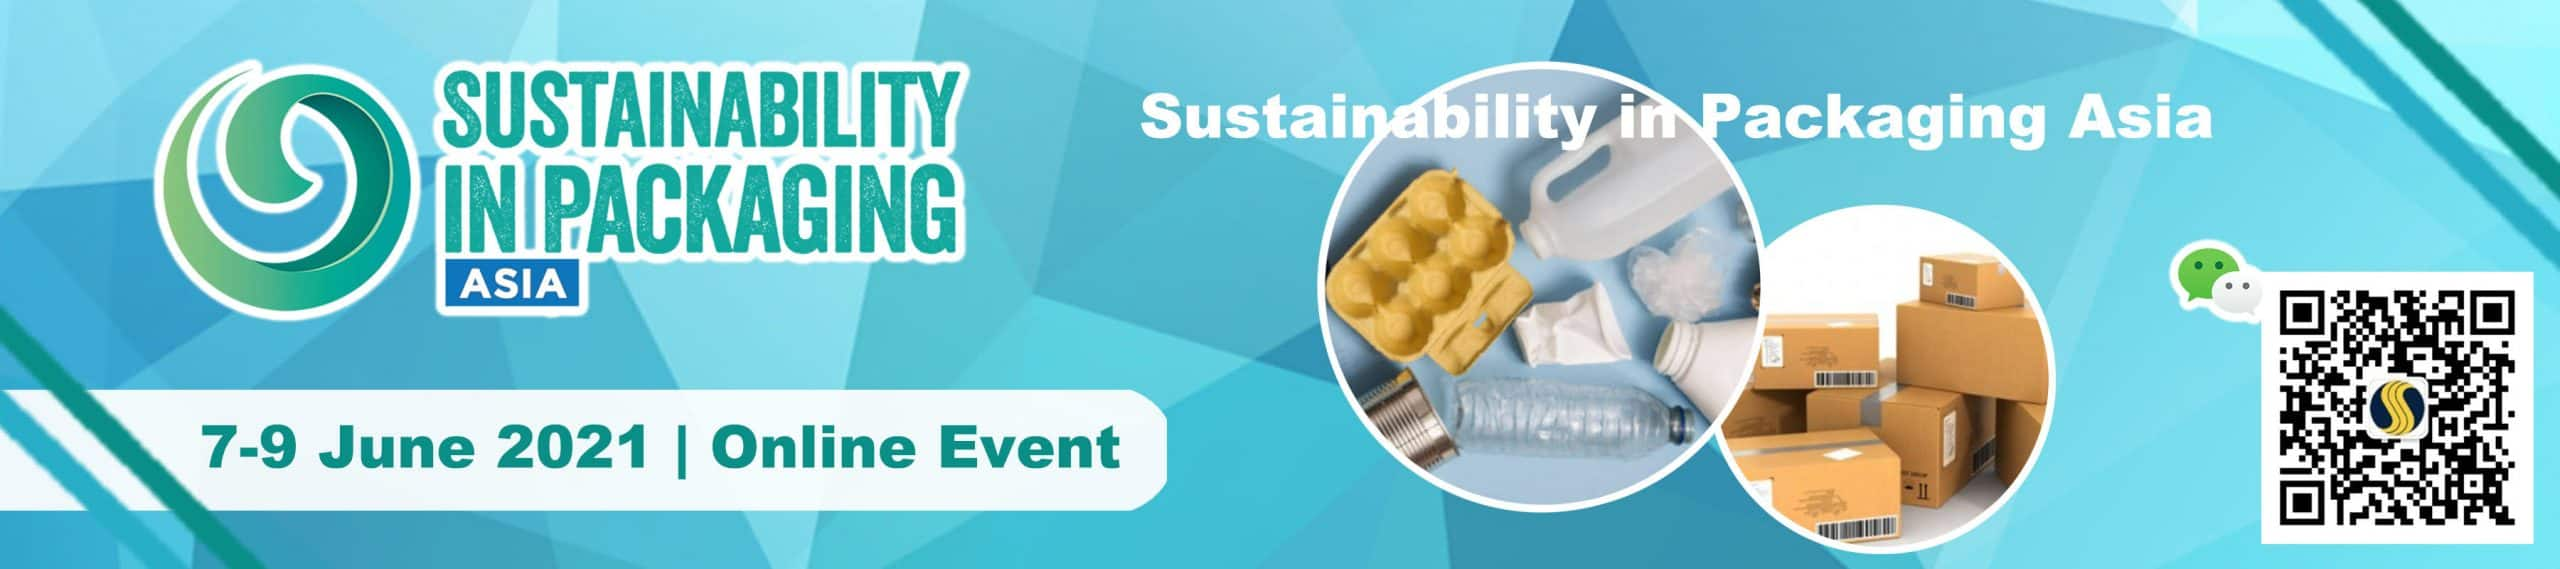 Sustainability in Packaging Asia 2021